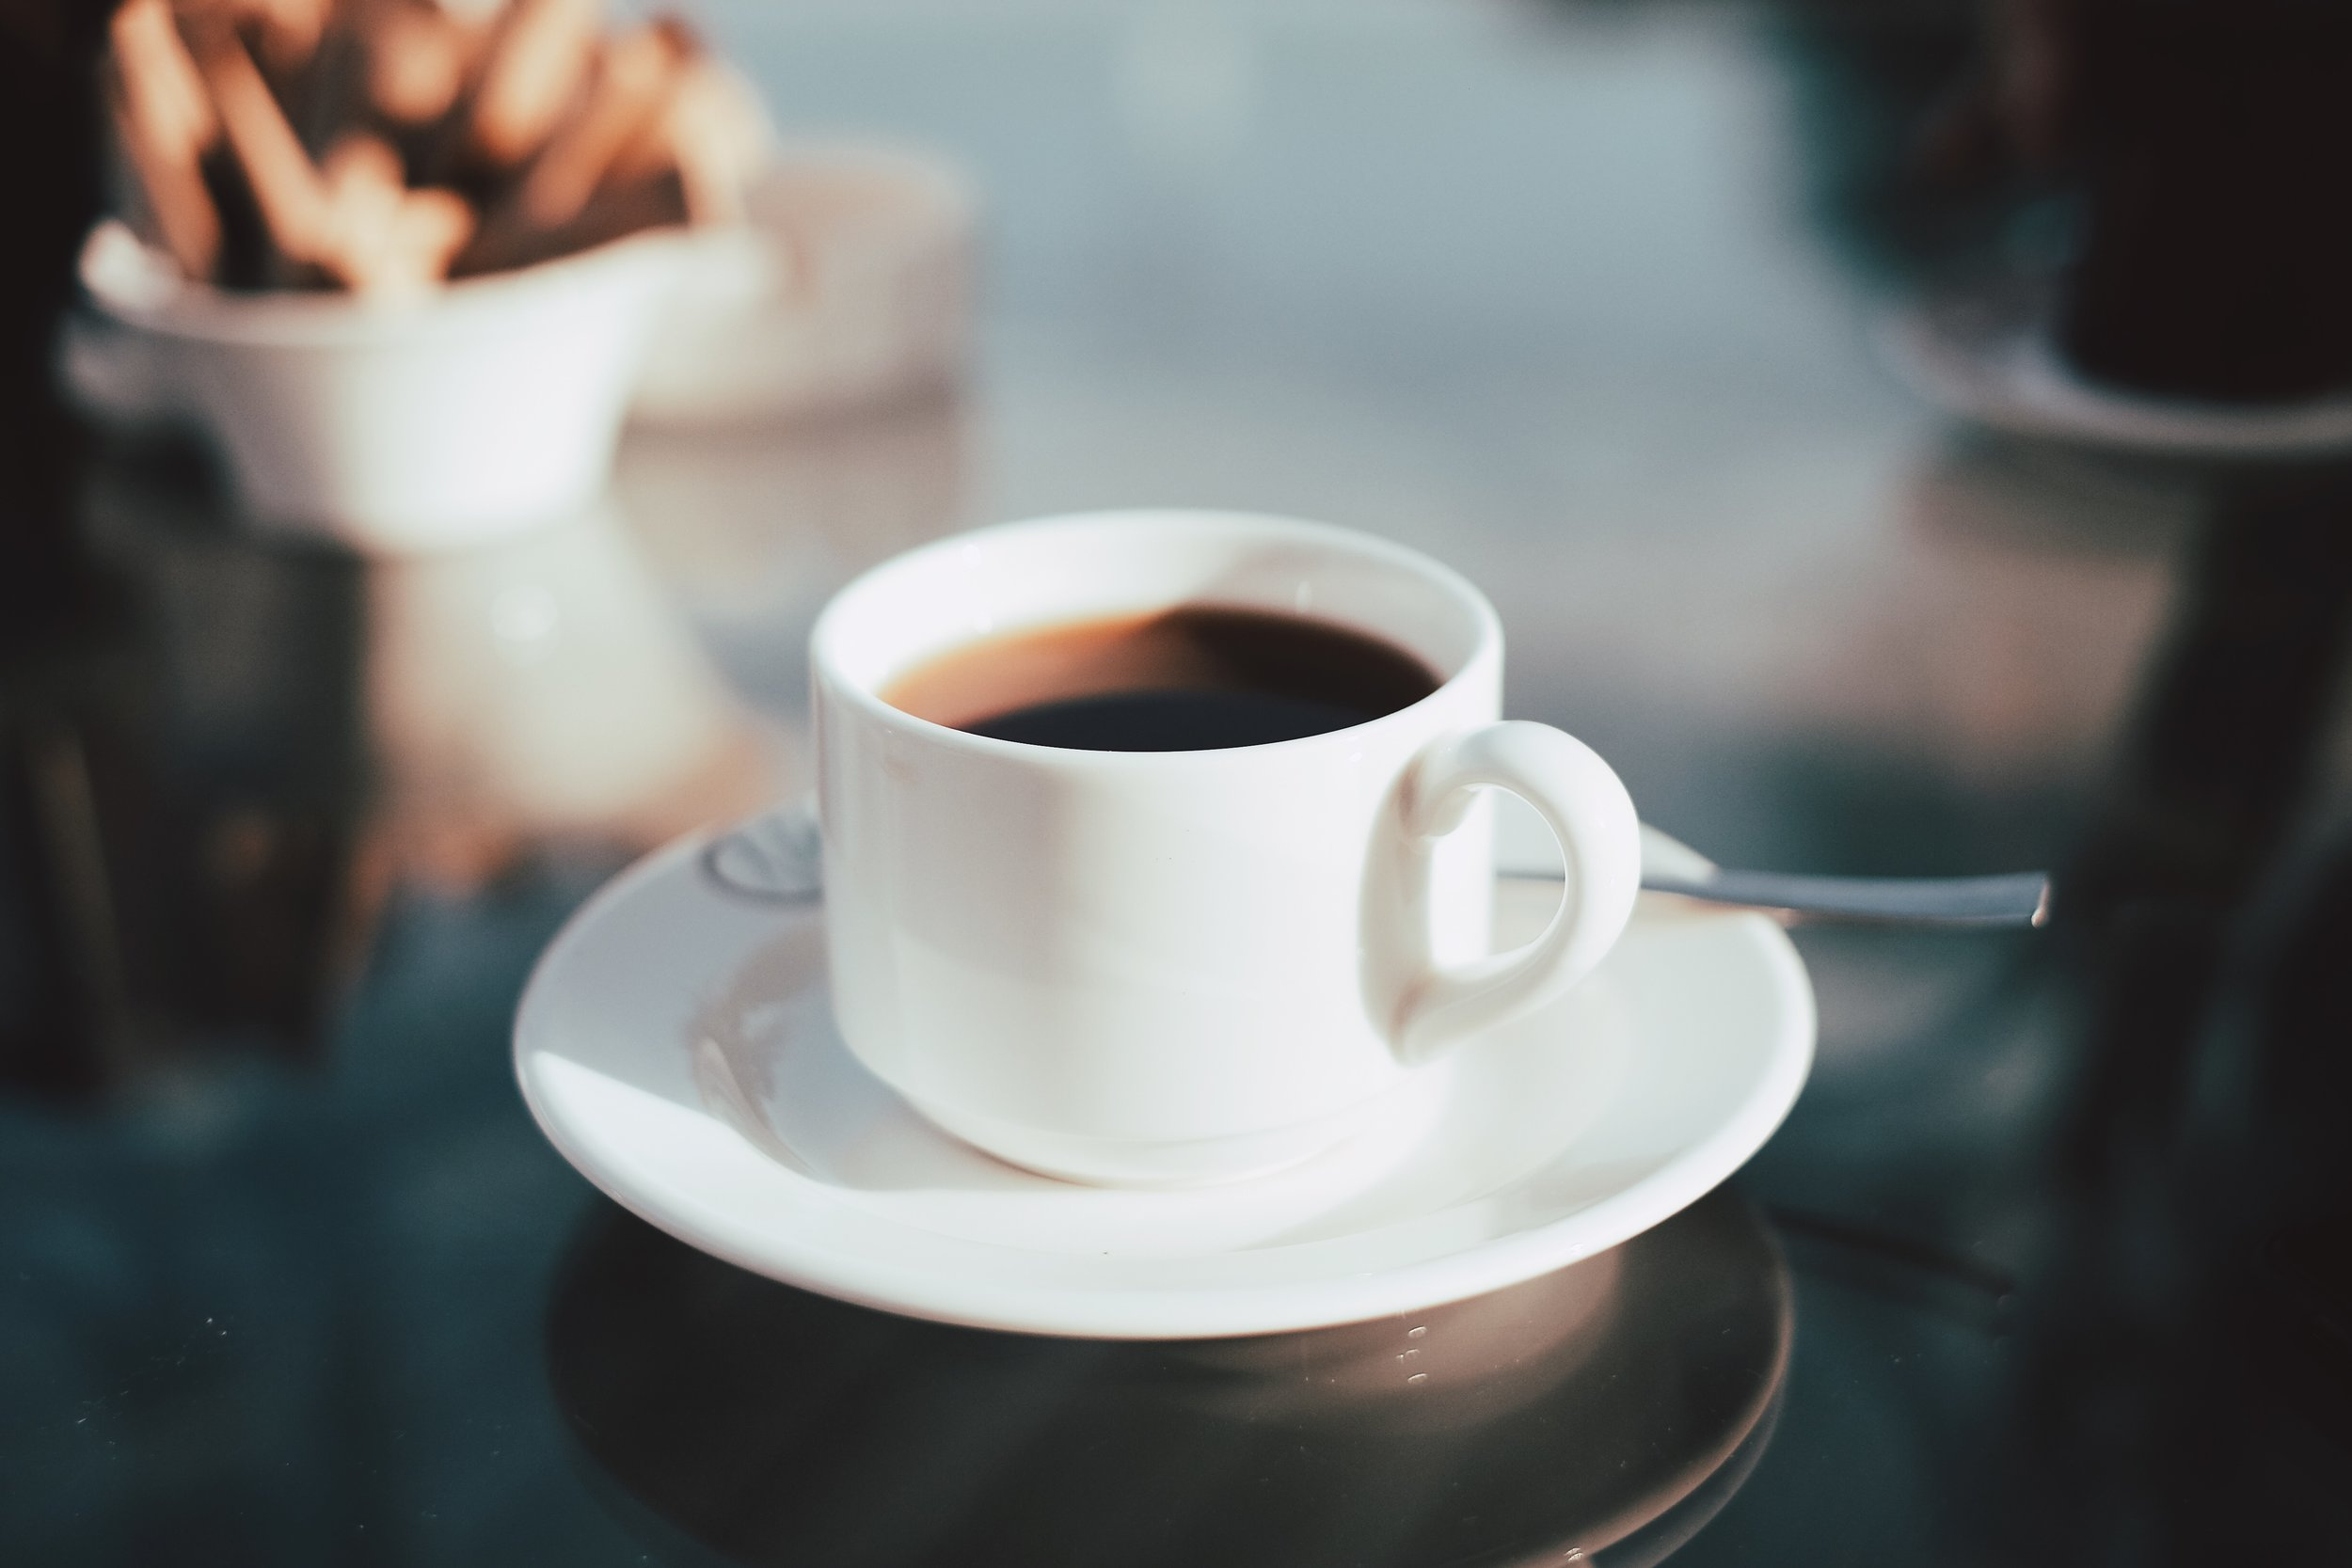 Black licorice and coffee is to be avoided at all costs.